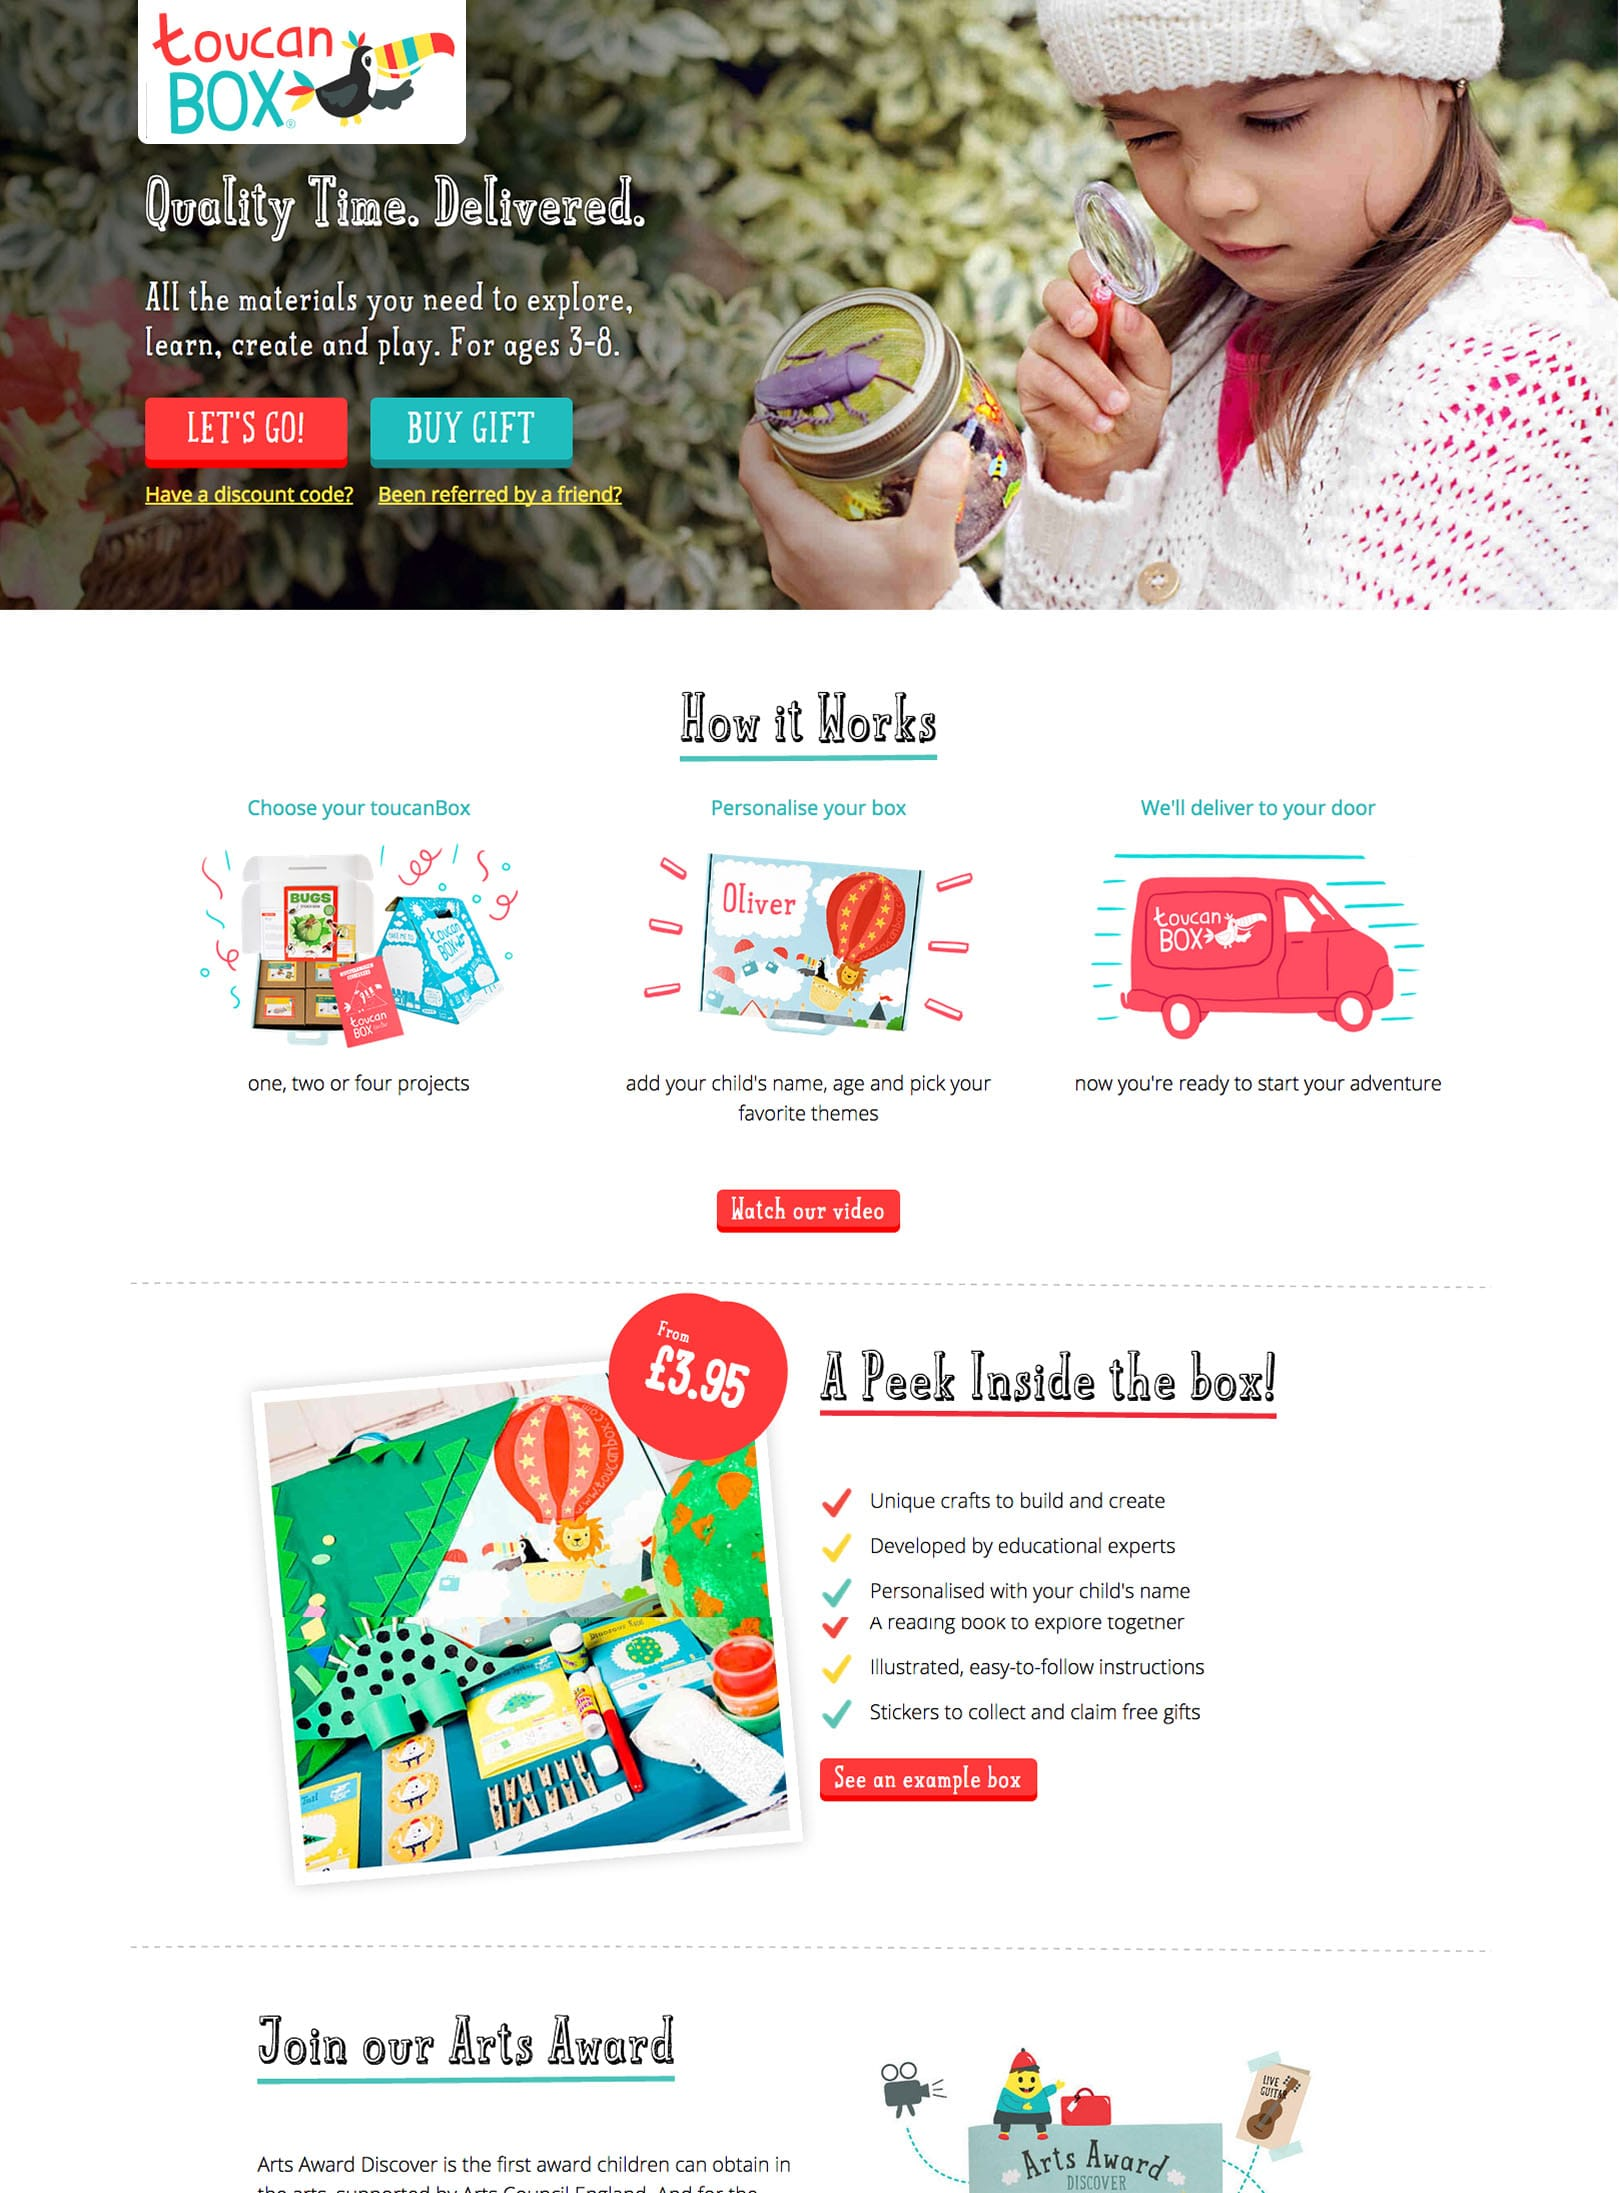 toucanBox - a website and an e-shop with boxes containing creative materials for children.